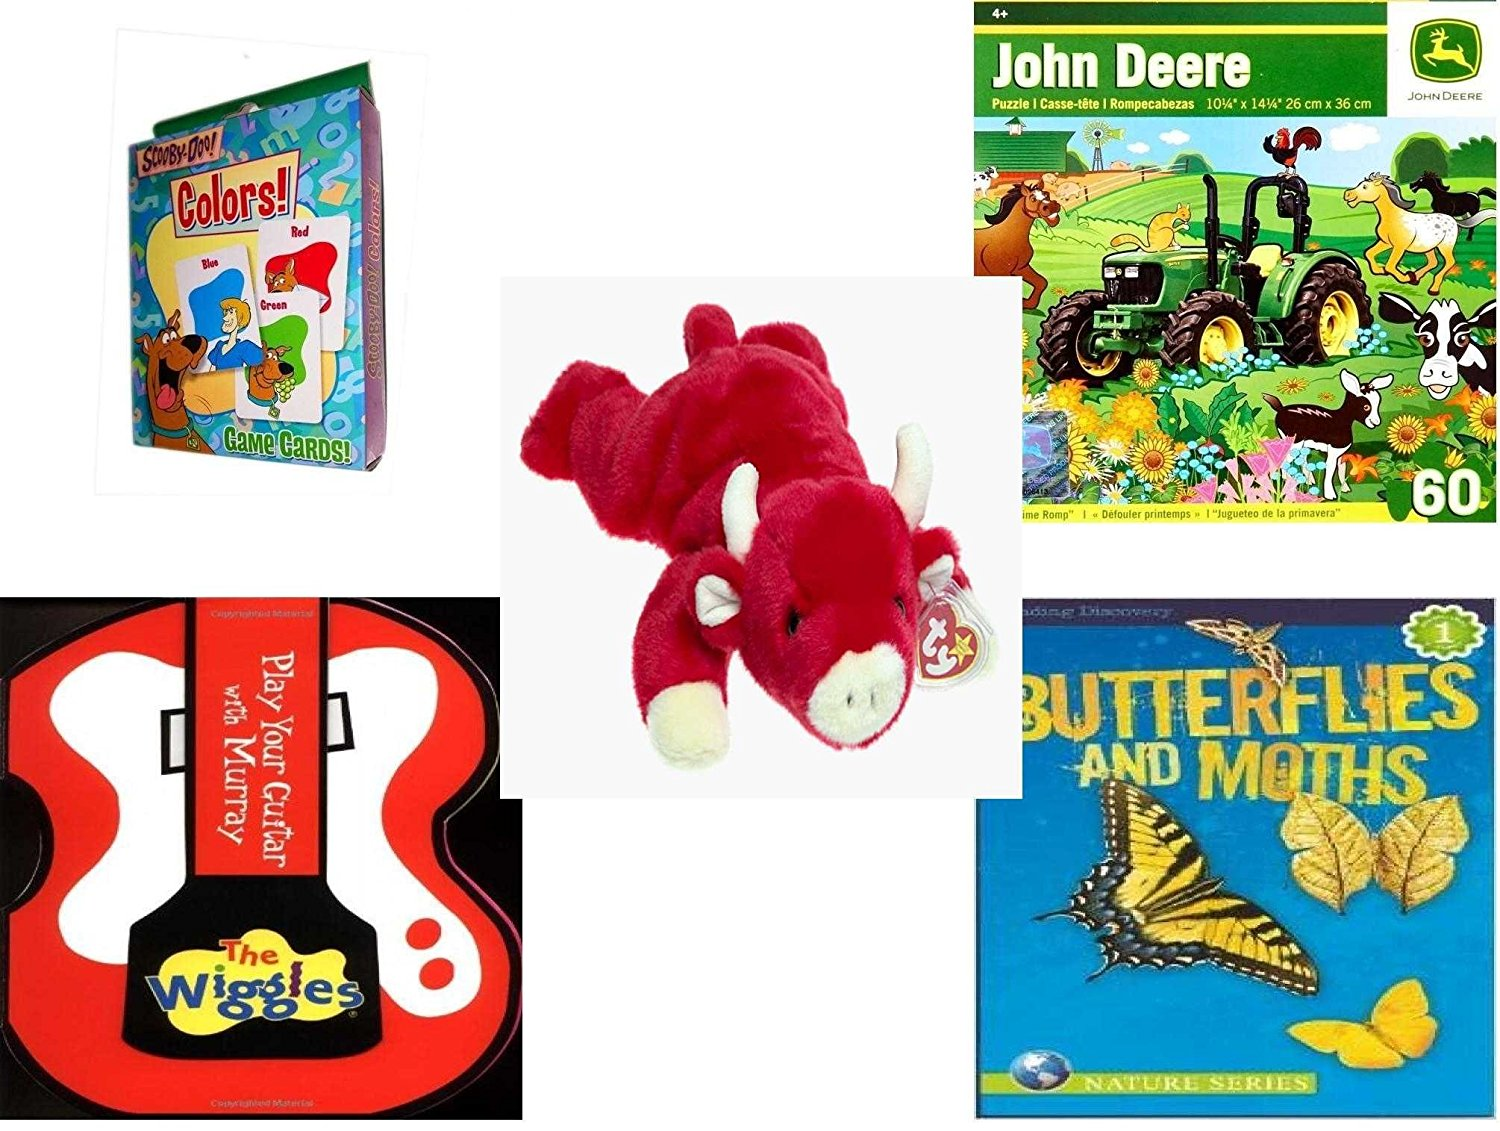 Children's Gift Bundle - Ages 3-5 [5 Piece] - Transformers Rescue Bots Memory Game - John Deere Springtime Romp 60 Piece Puzzle Toy - TY Beanie Baby - Snort the Bull - The Wiggles Play Your Guitar w